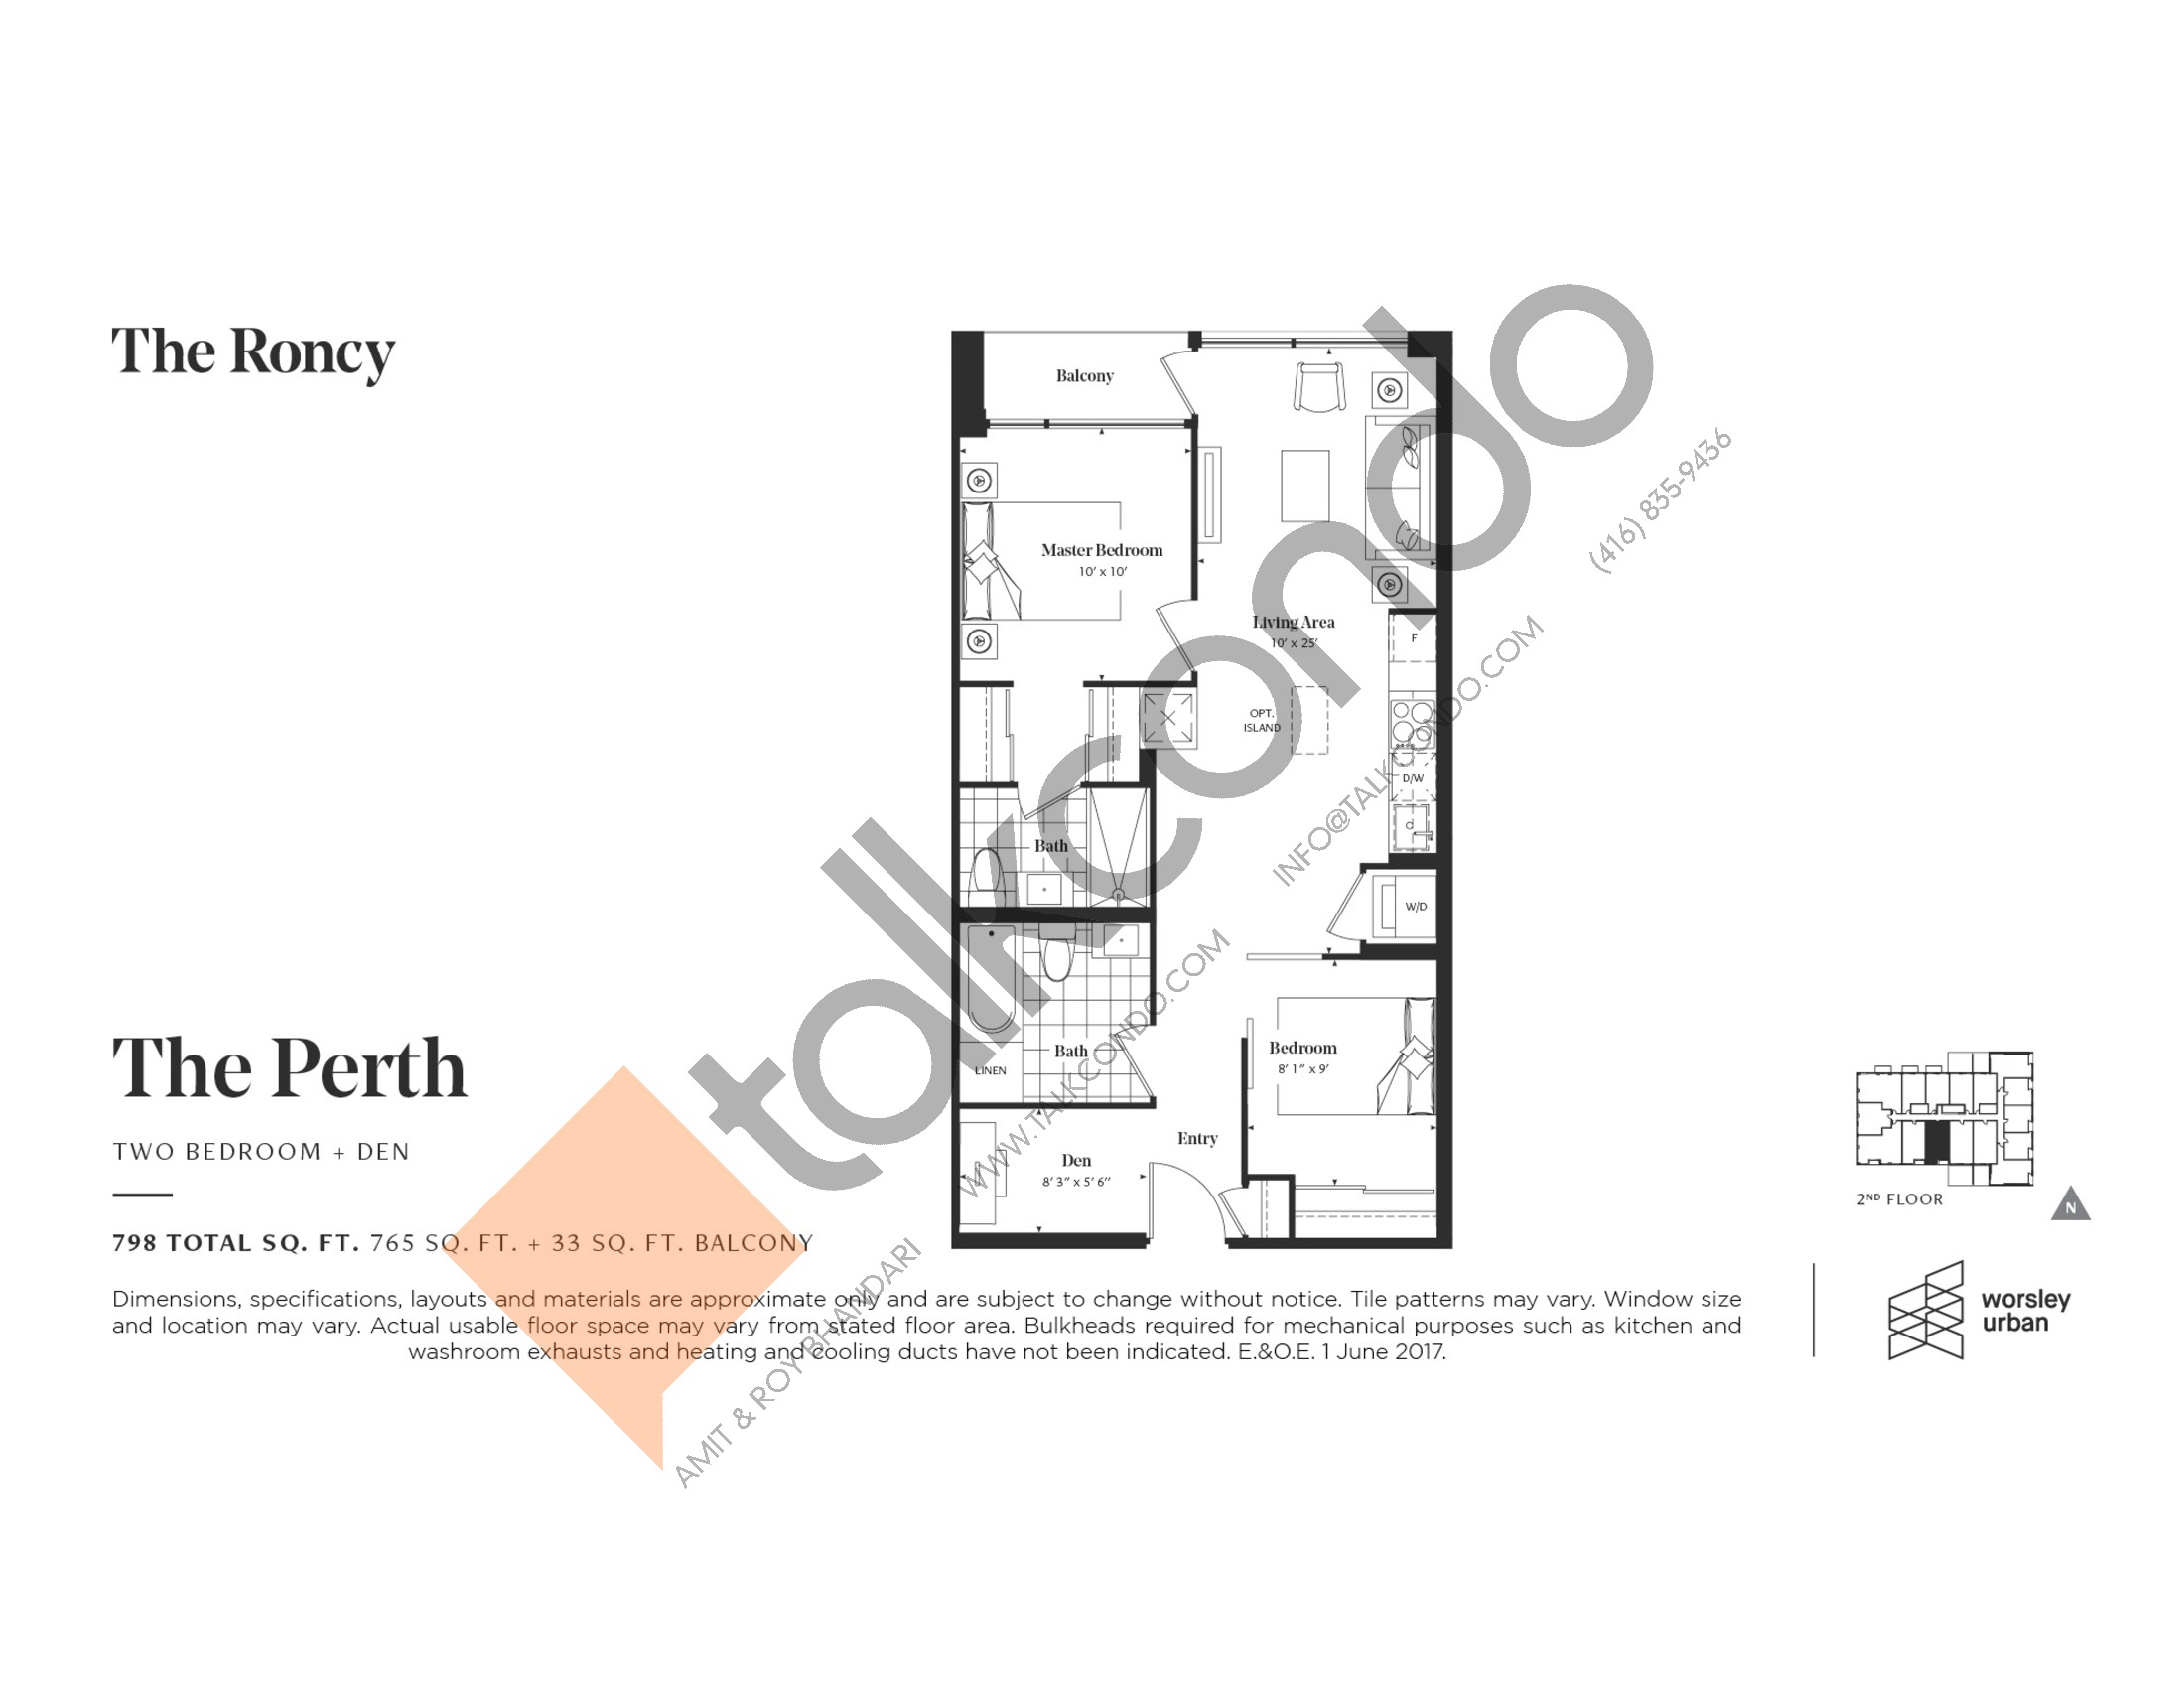 The Perth Floor Plan at The Roncy Condos - 765 sq.ft